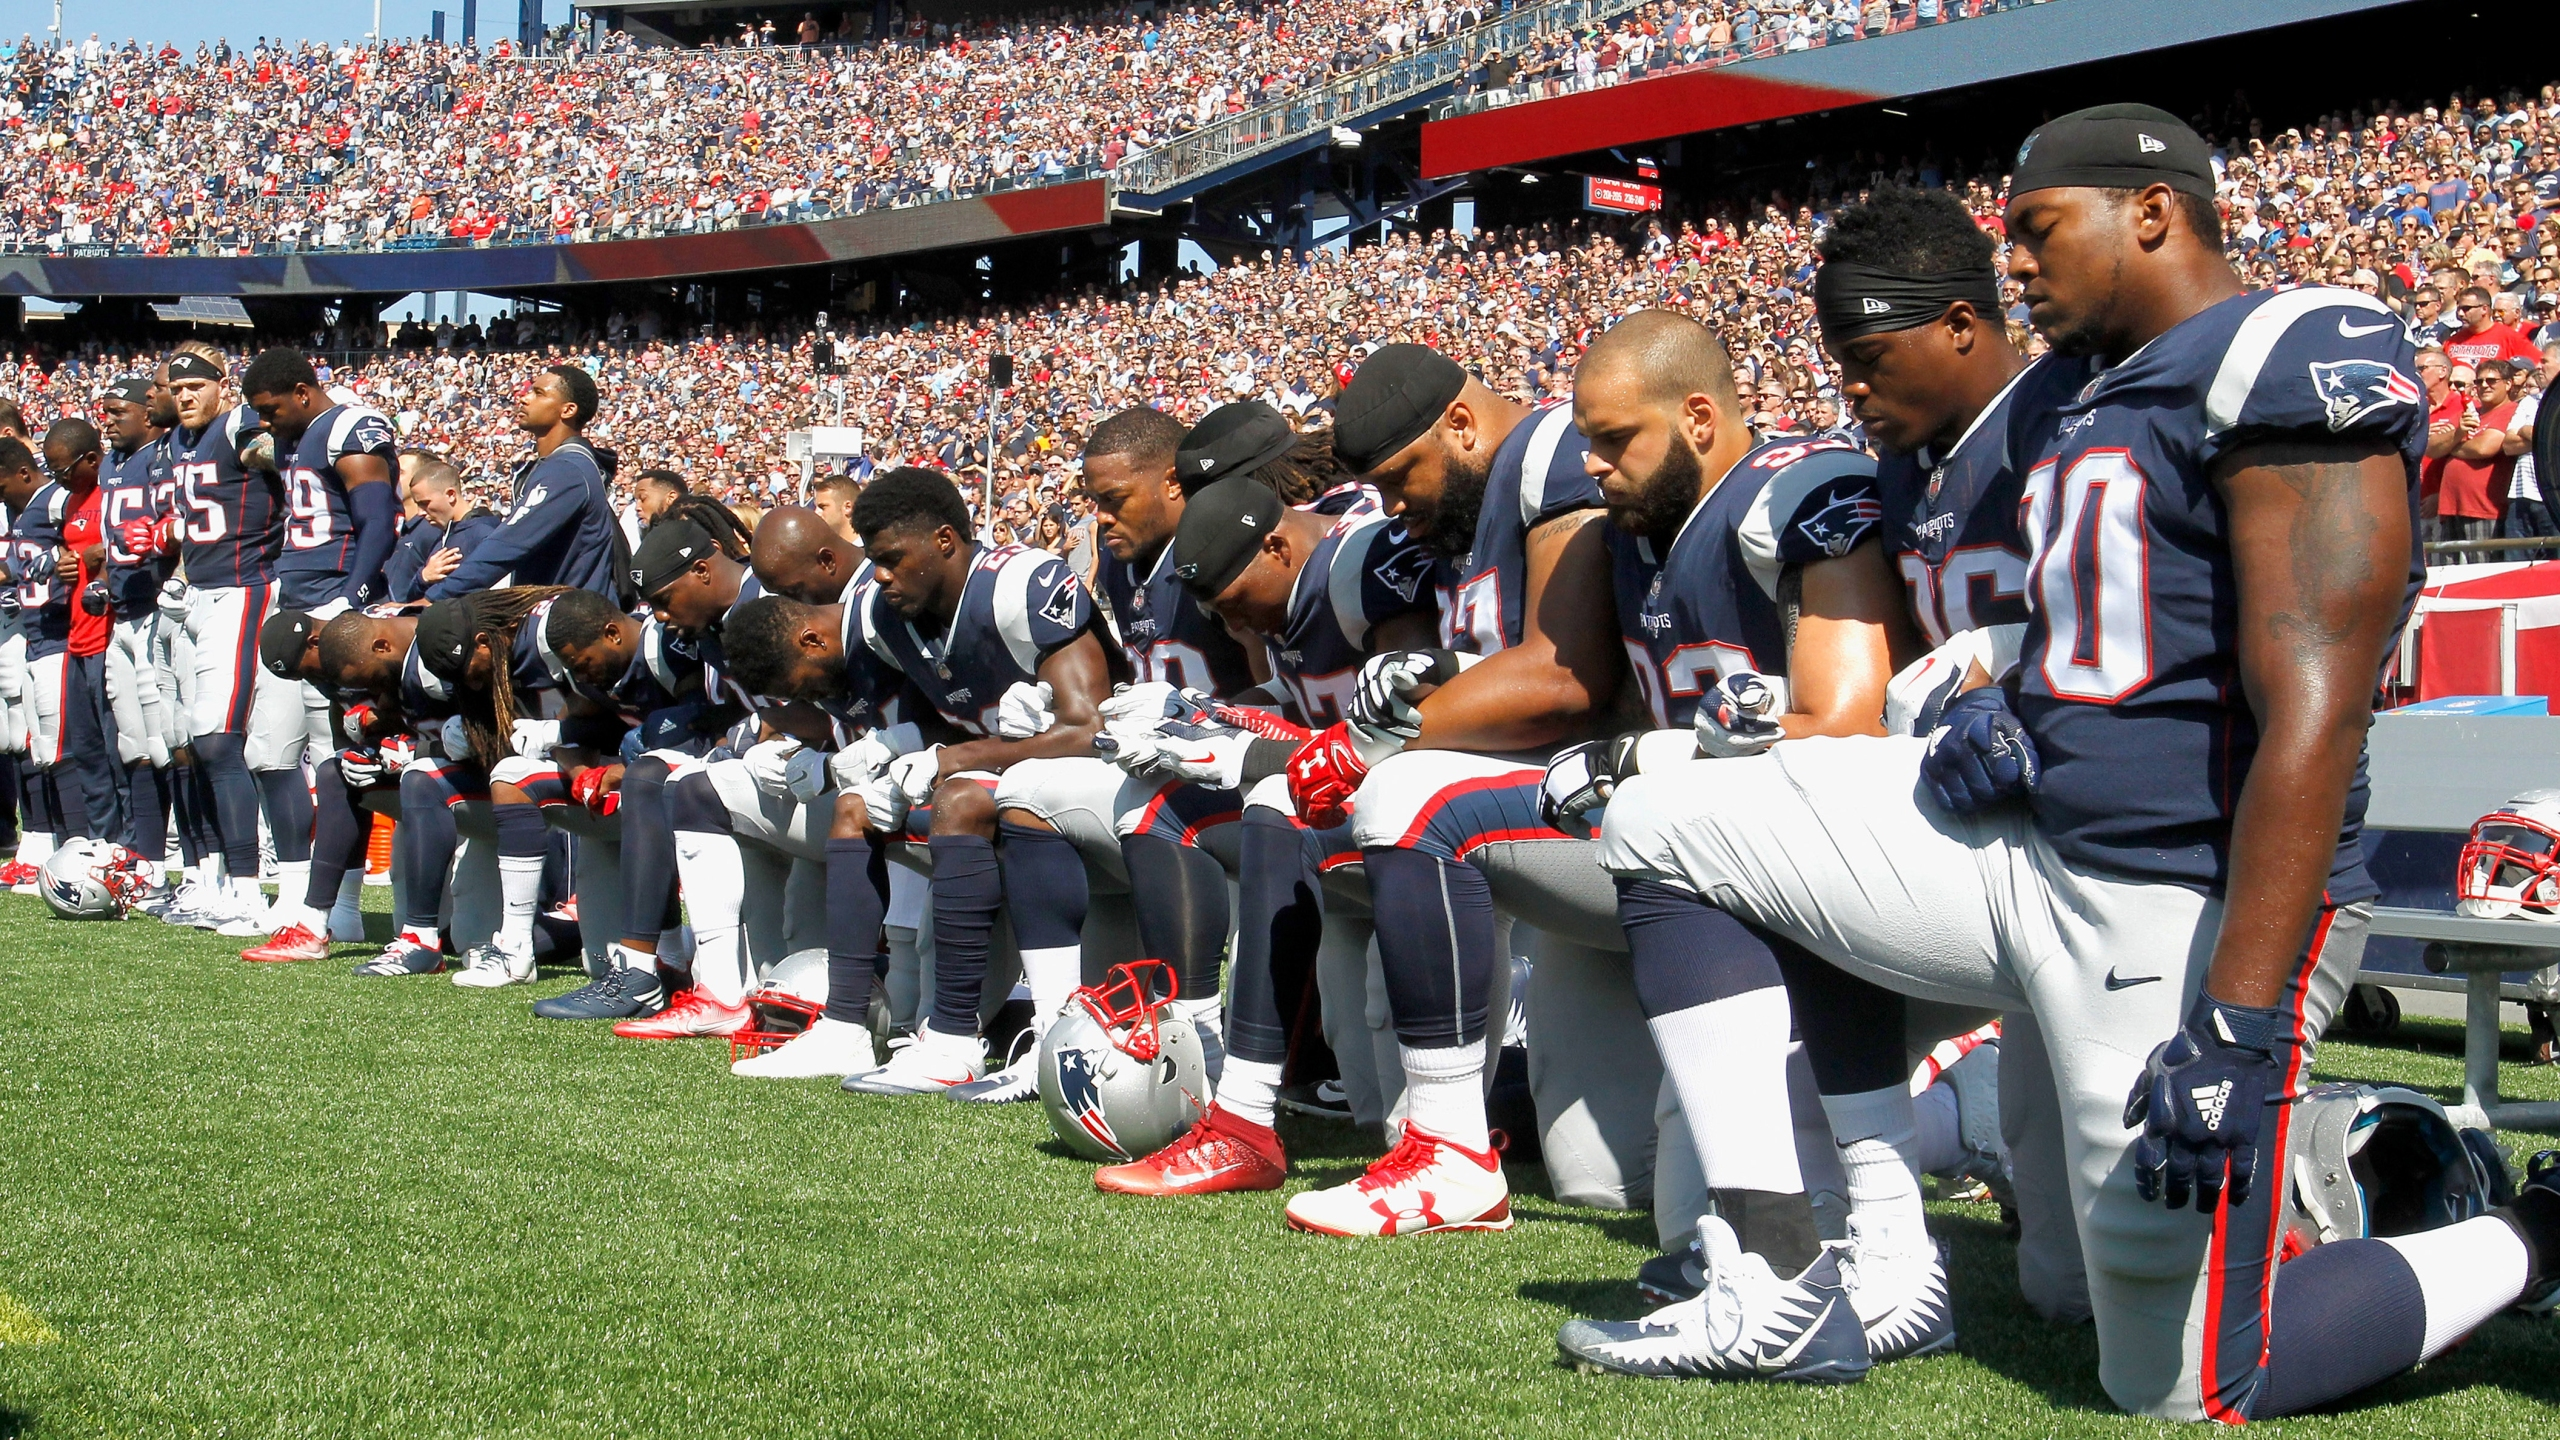 Picture of NFL players kneeling